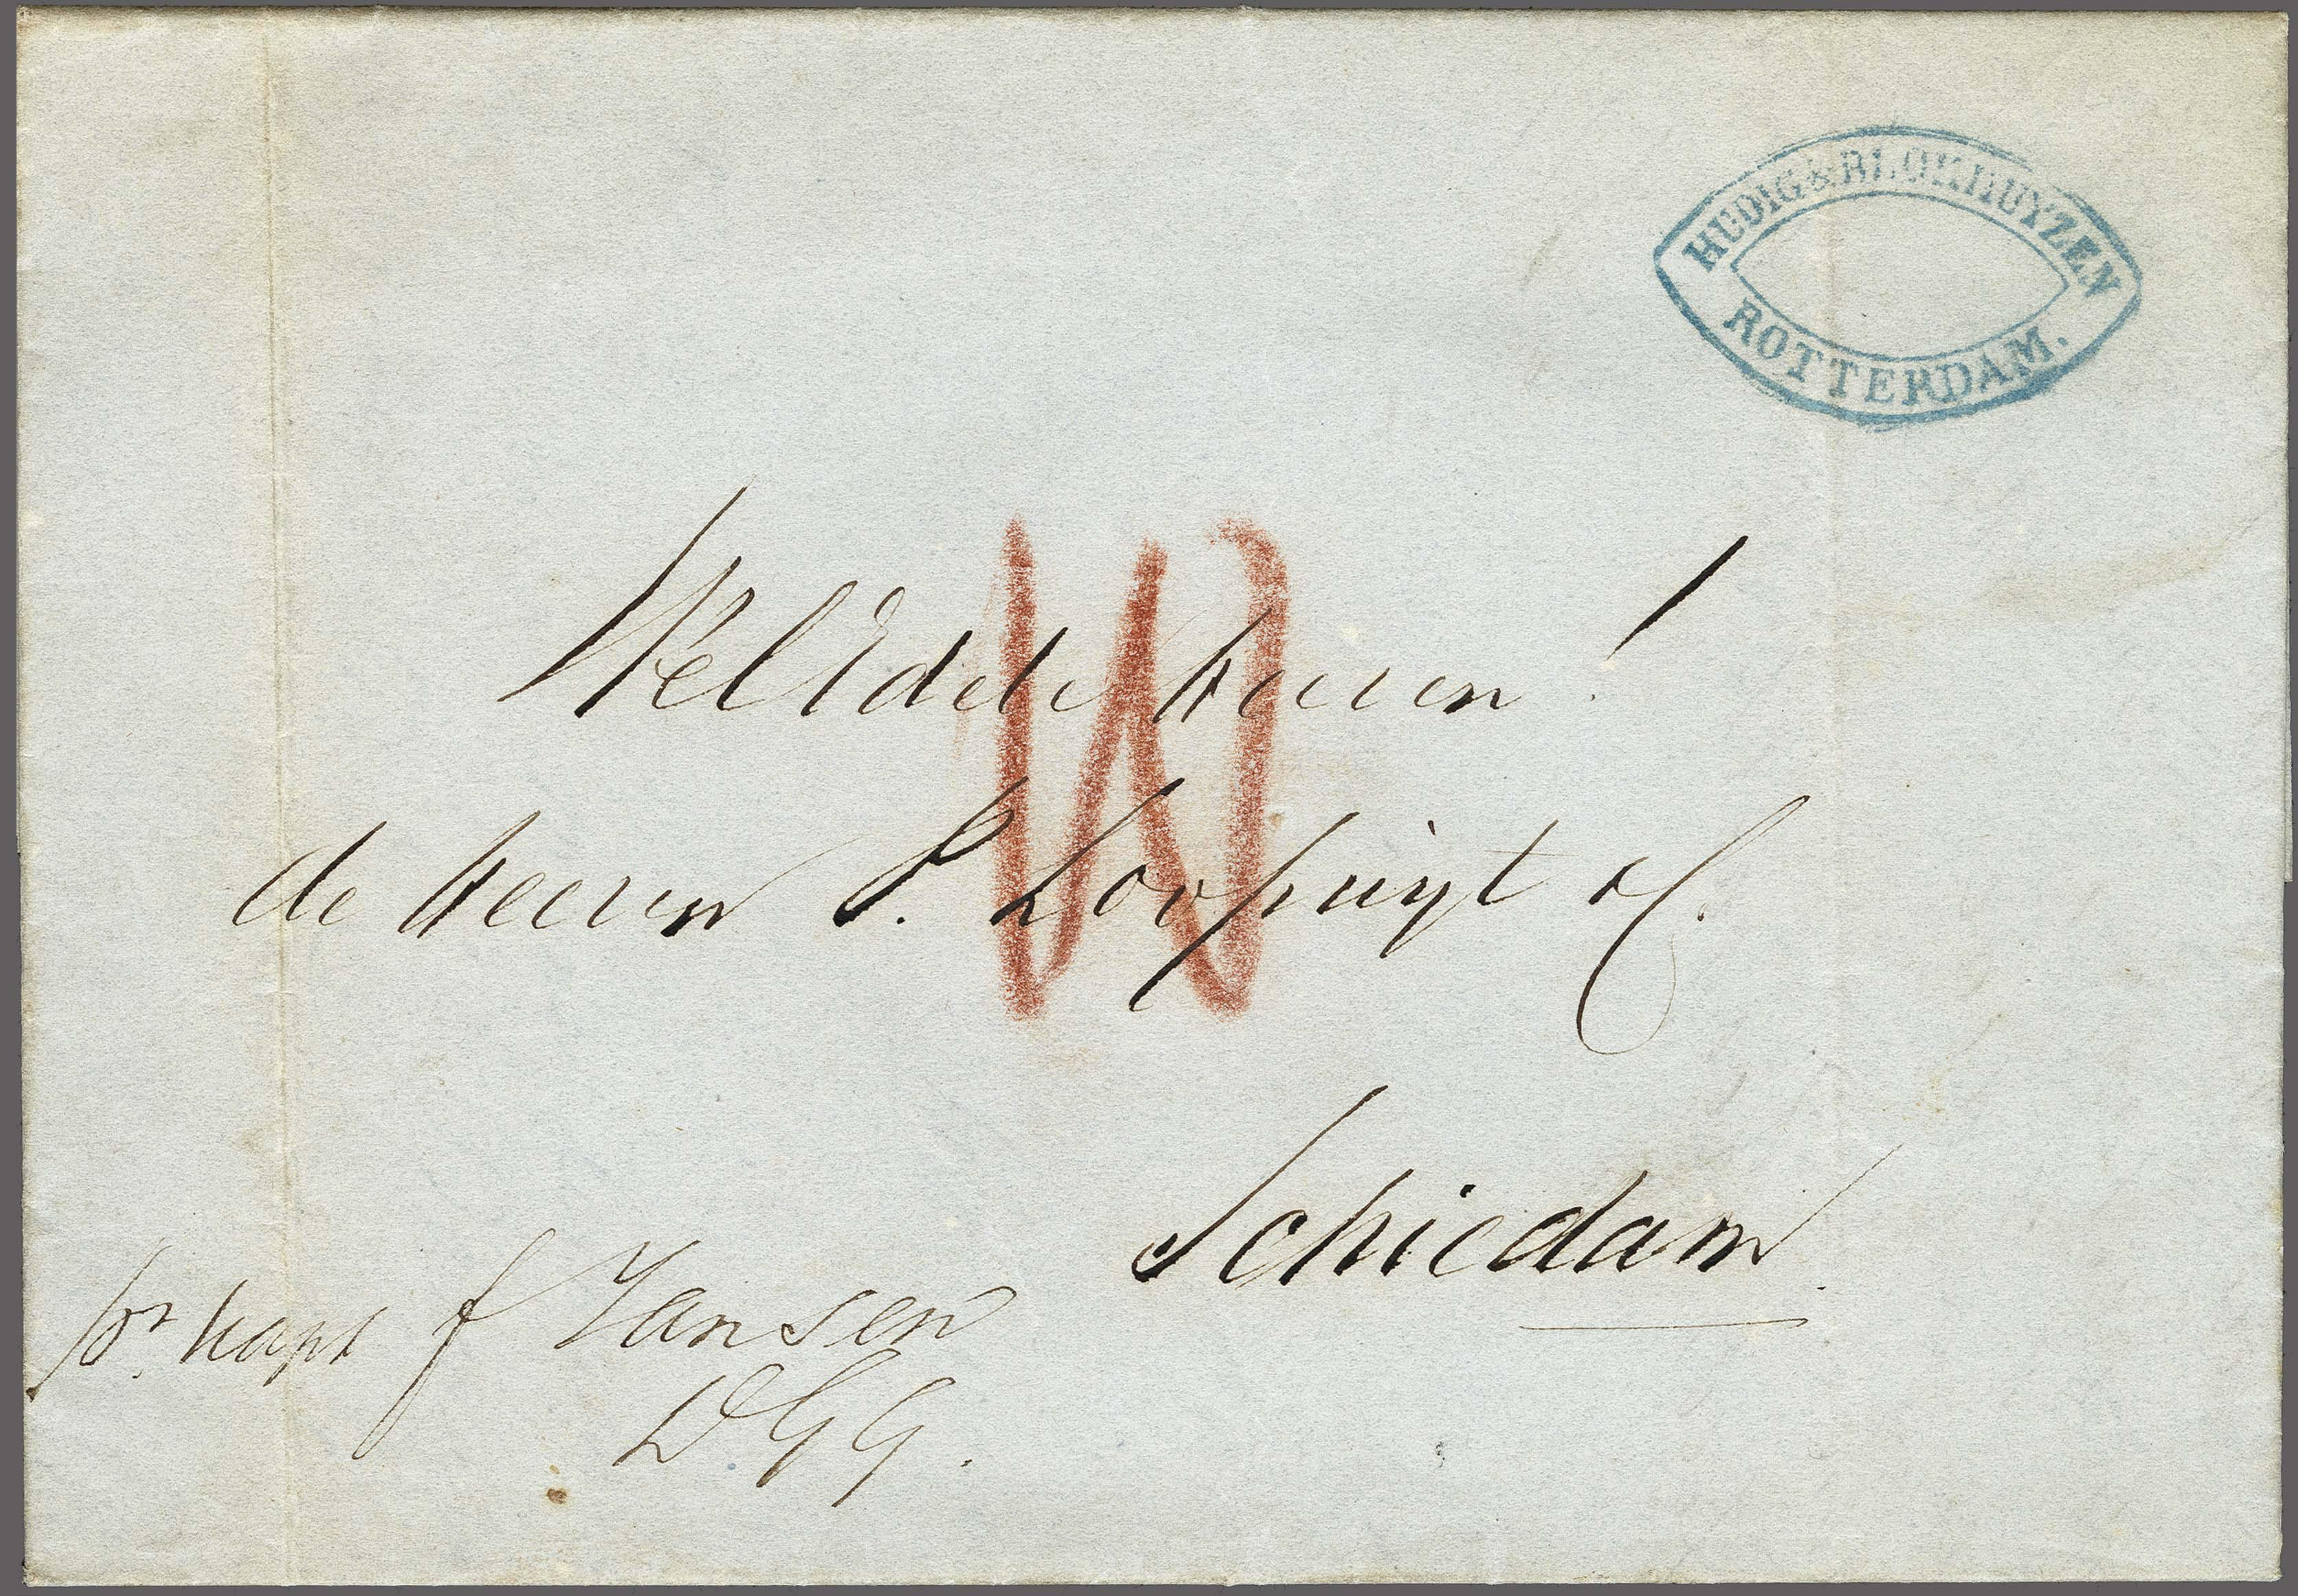 Lot 2447 - Netherlands and former colonies Netherlands -  Corinphila Veilingen Auction 250-253 - Day 3 - Netherlands and former colonies - Single lots & Picture postcards